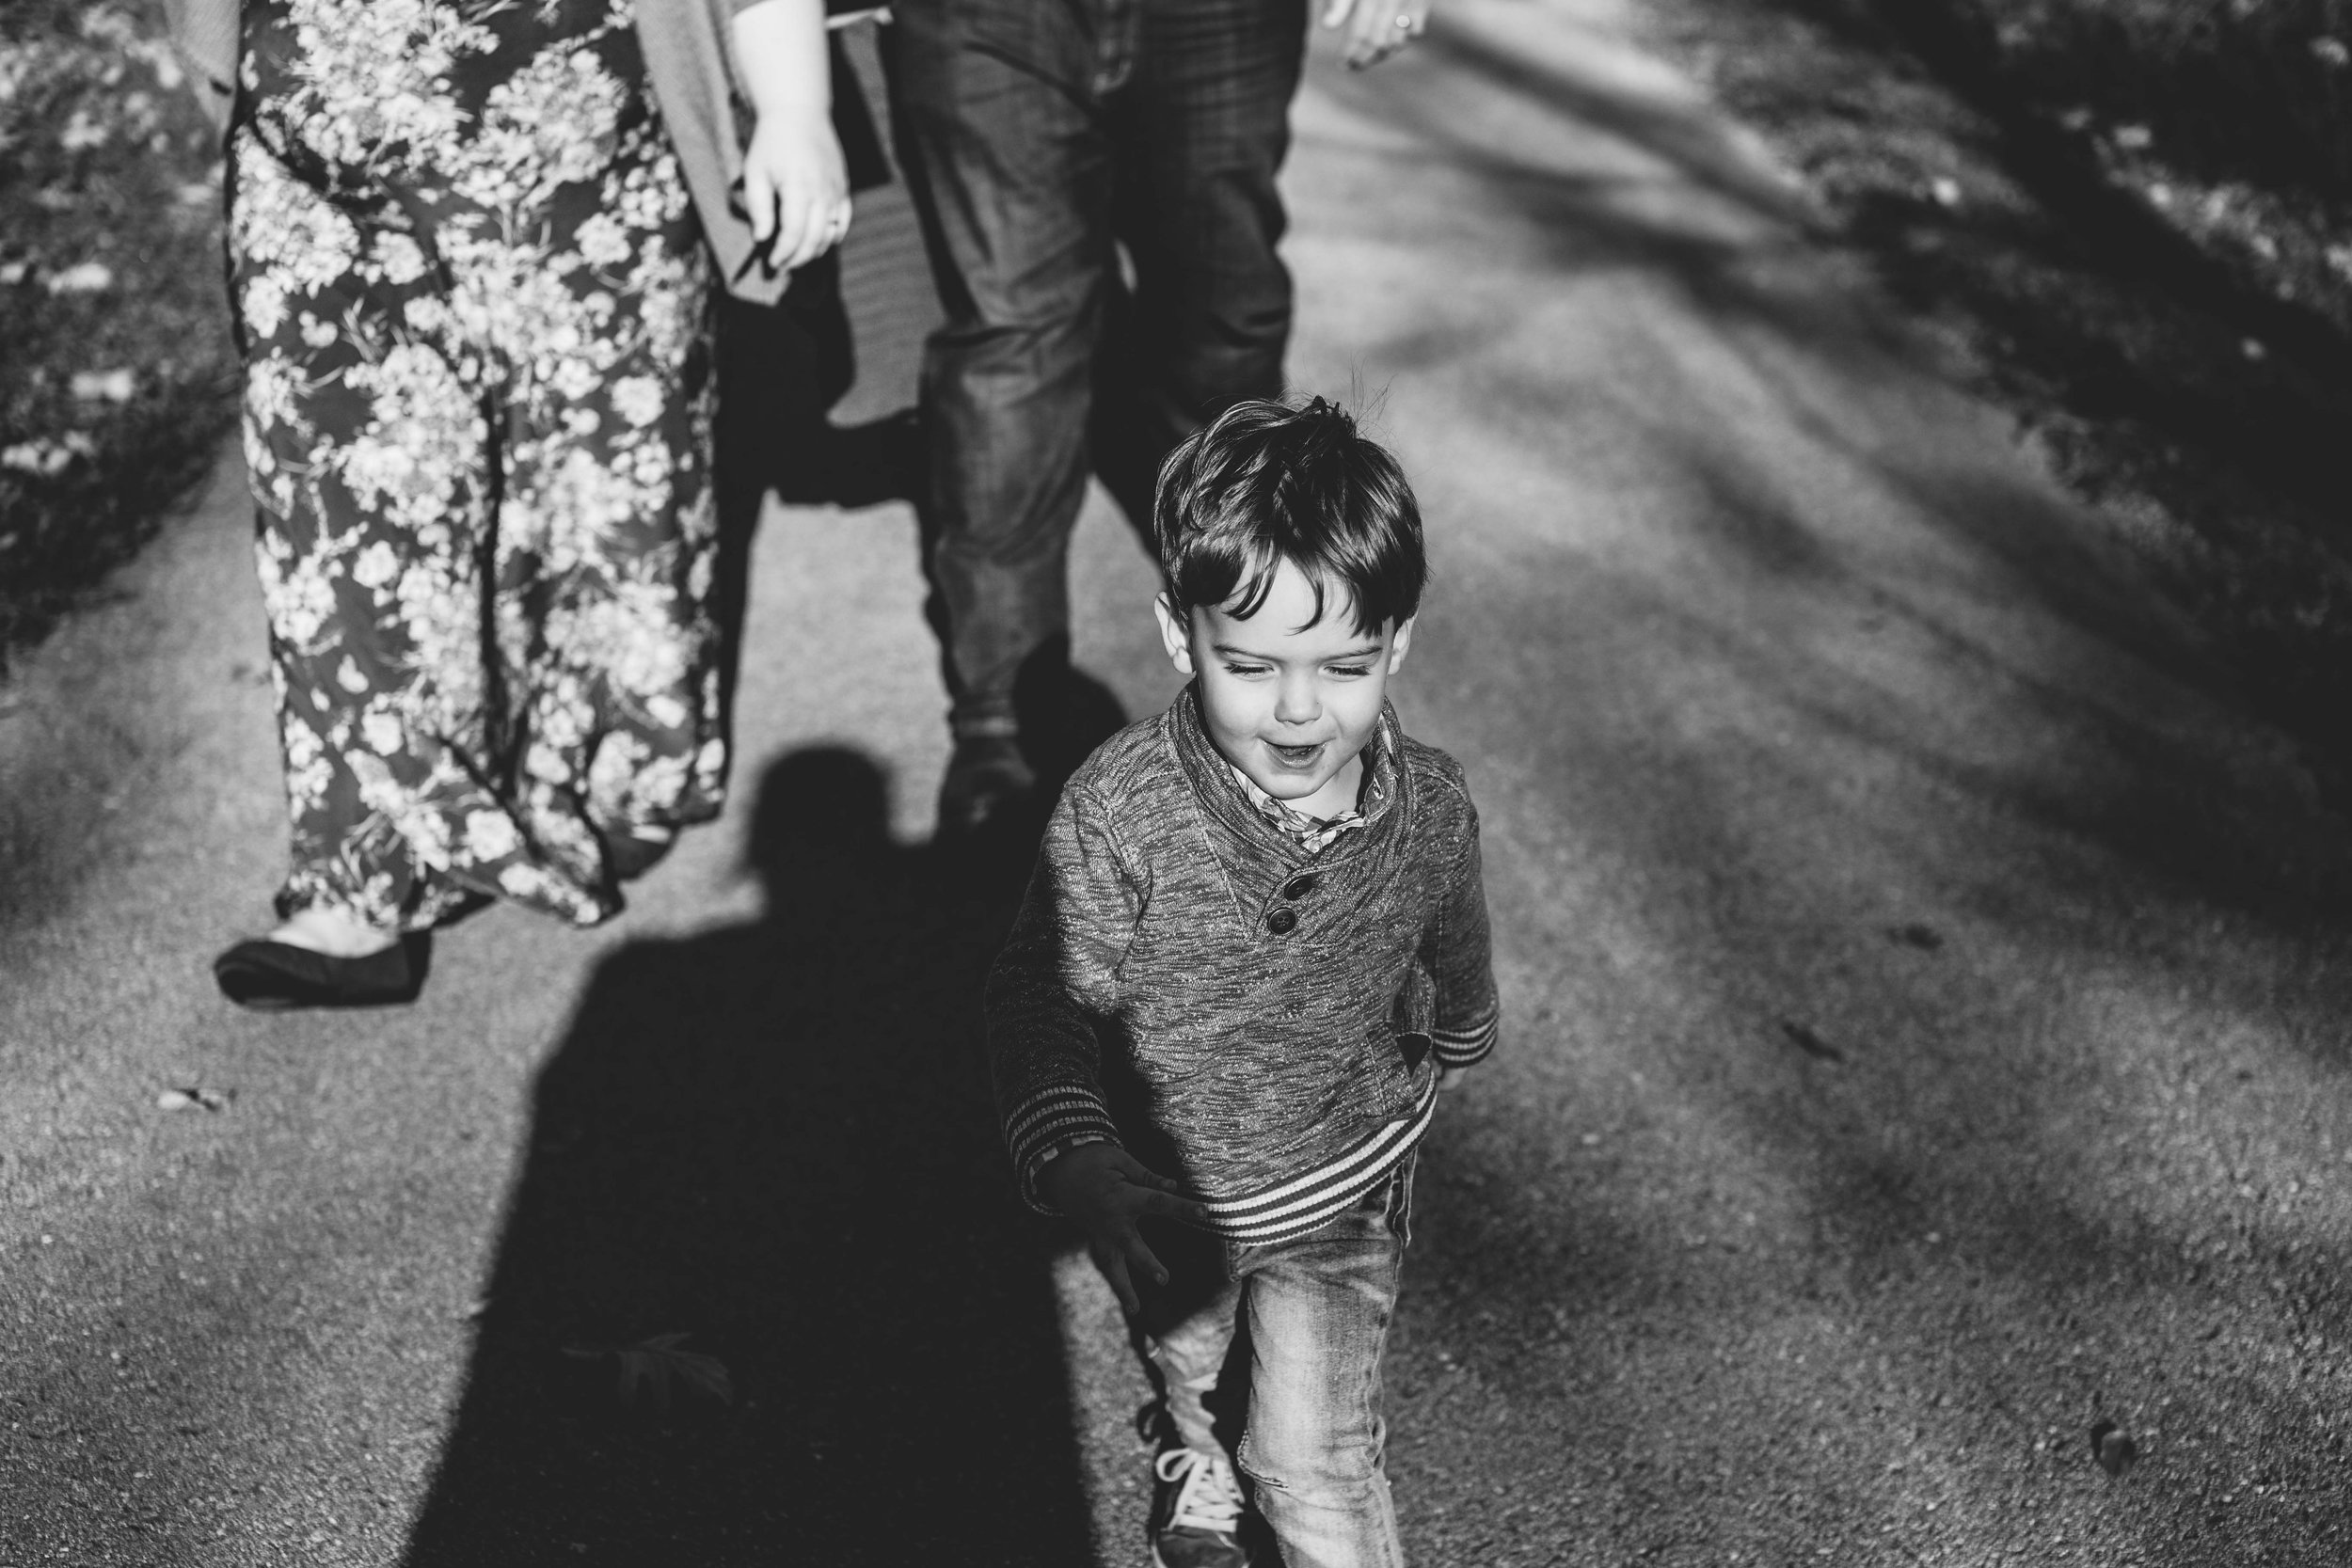 The Veach family | Hannahill Photography | Kansas City, MO